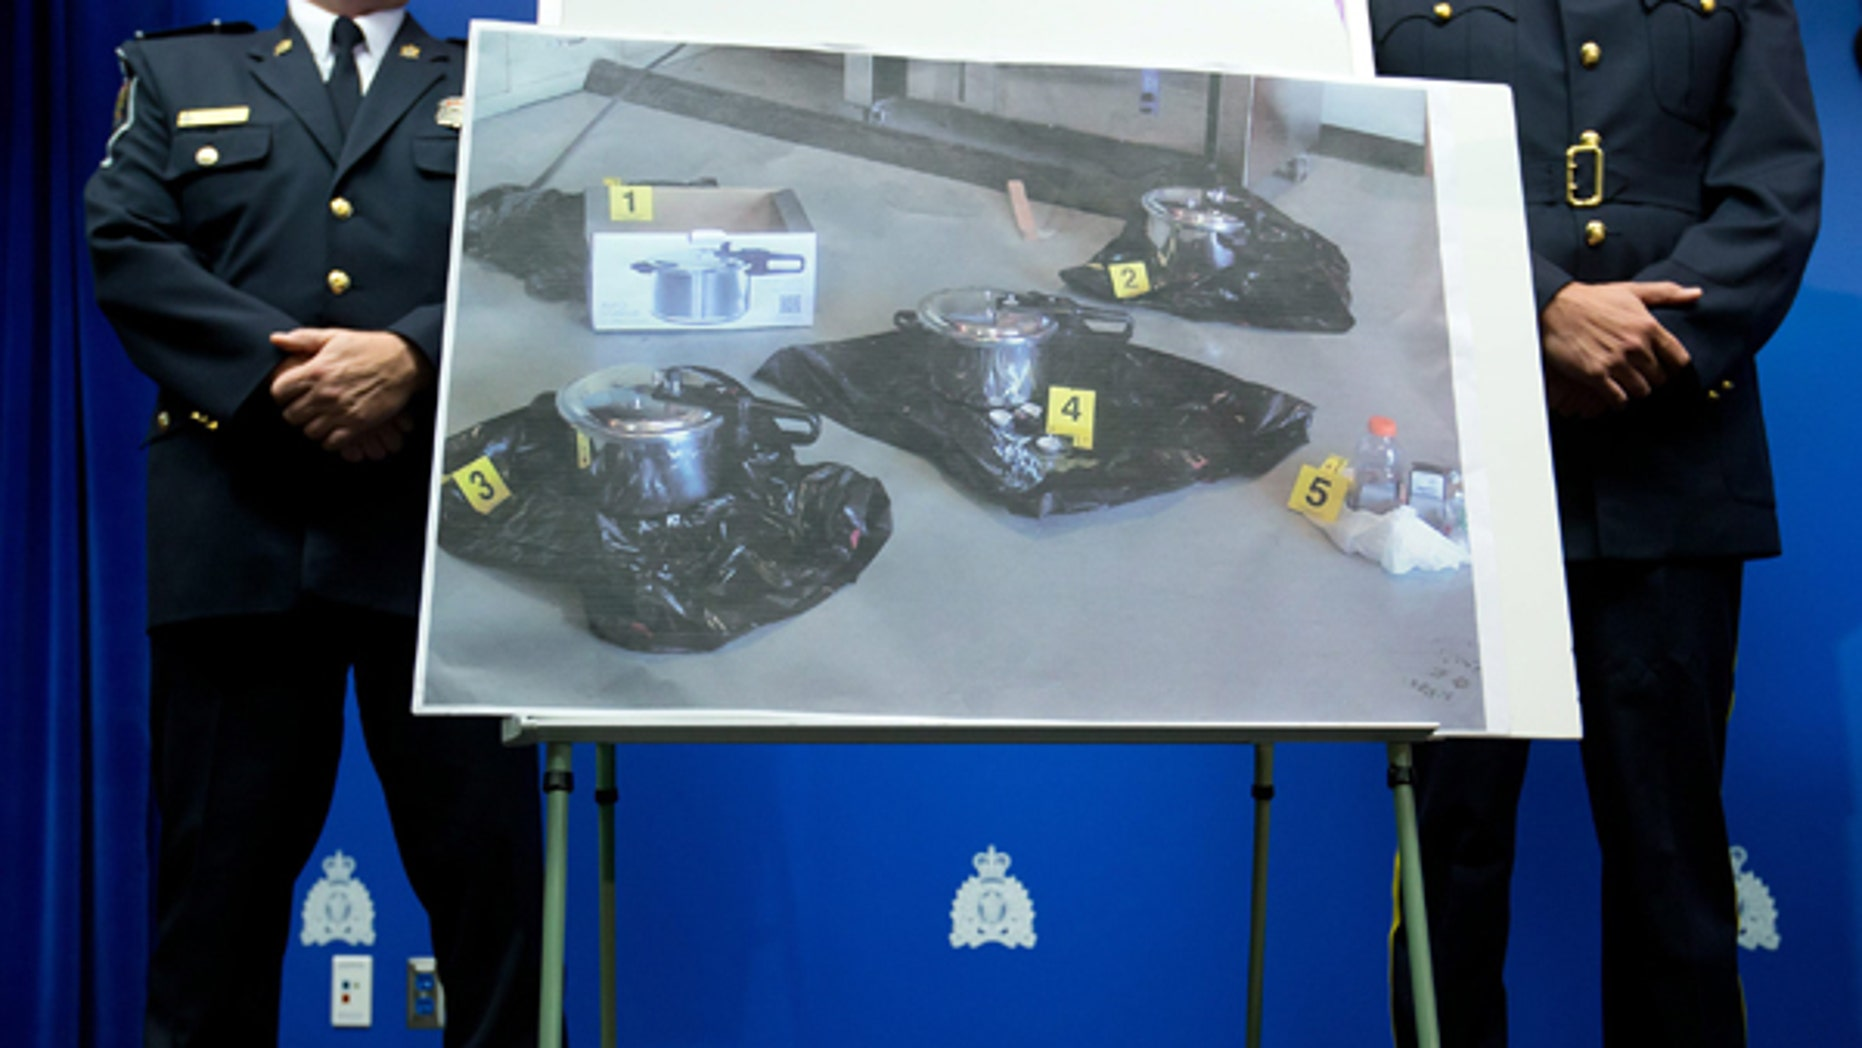 July 2, 2013: An evidence photo showing a set of pressure cookers is displayed during a news conference  in Surrey, B.C.. Police have arrested a Canadian man and a woman and charged them as terrorist suspects for attempting to leave a suspicious package at British Columbia's provincial legislature on Canada Day.